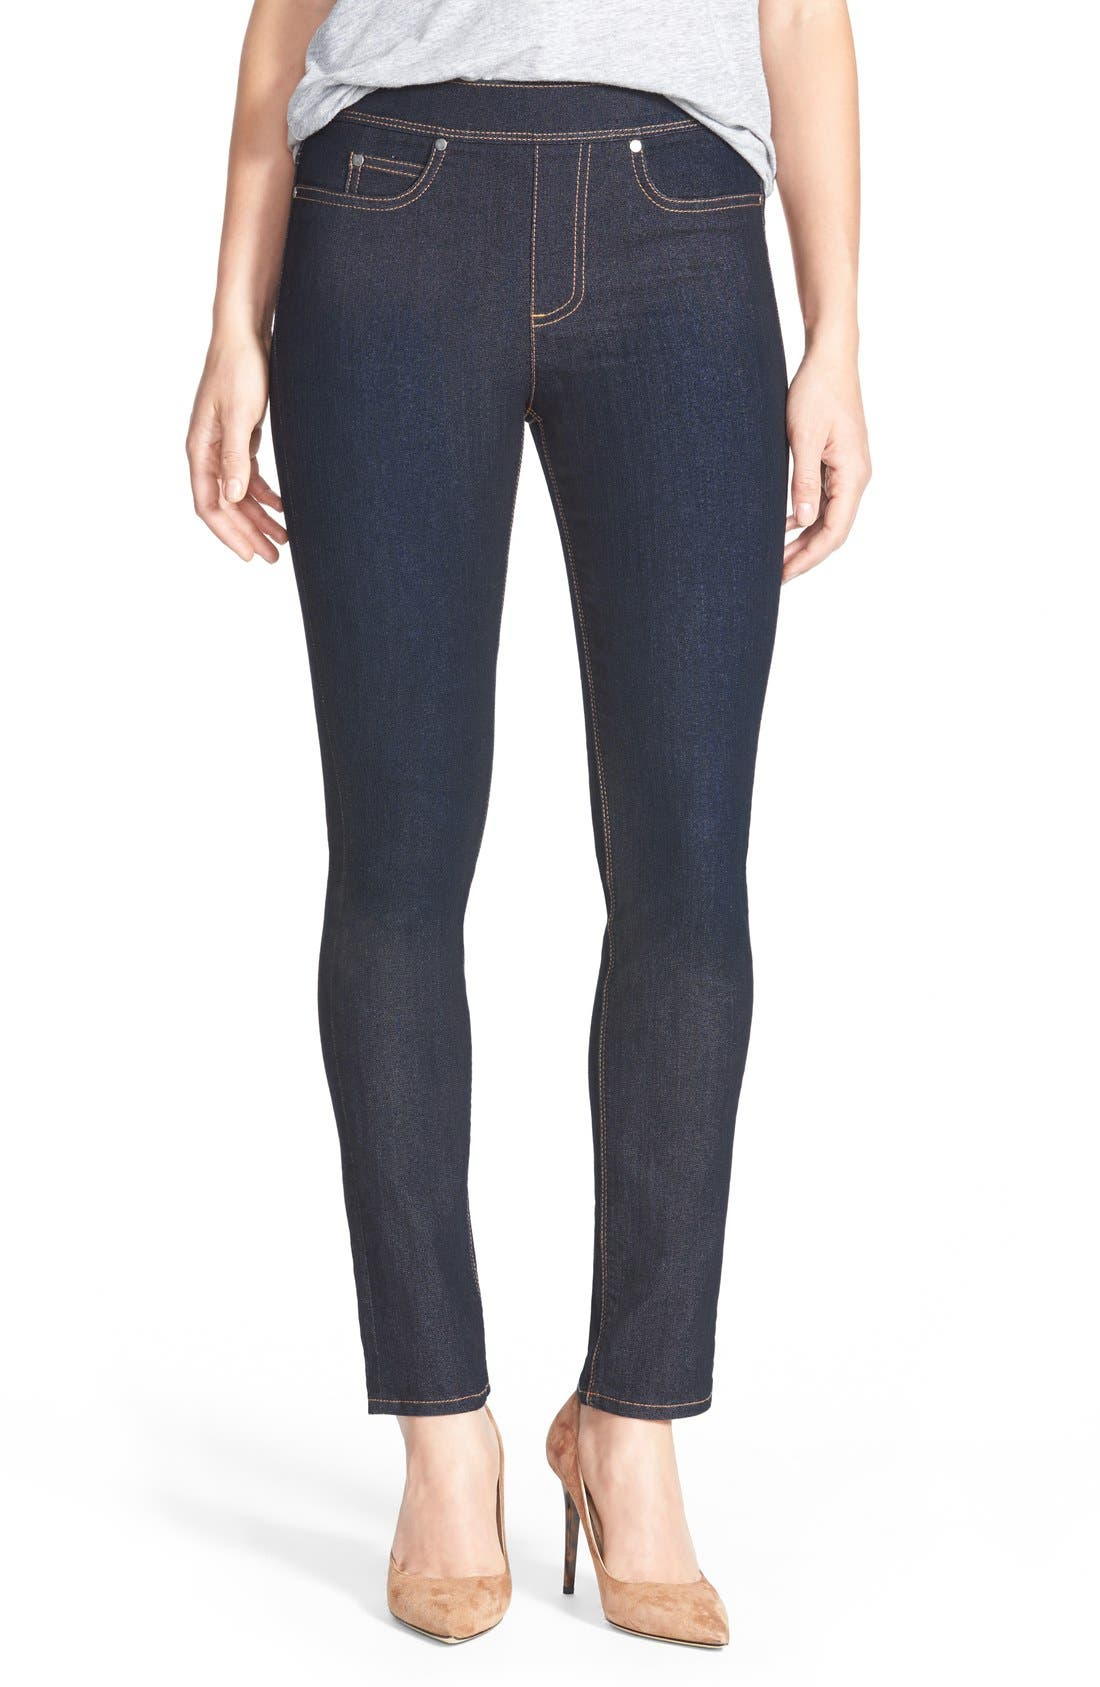 Alternate Image 1 Selected - Two by Vince Camuto Stretch Denim Leggings